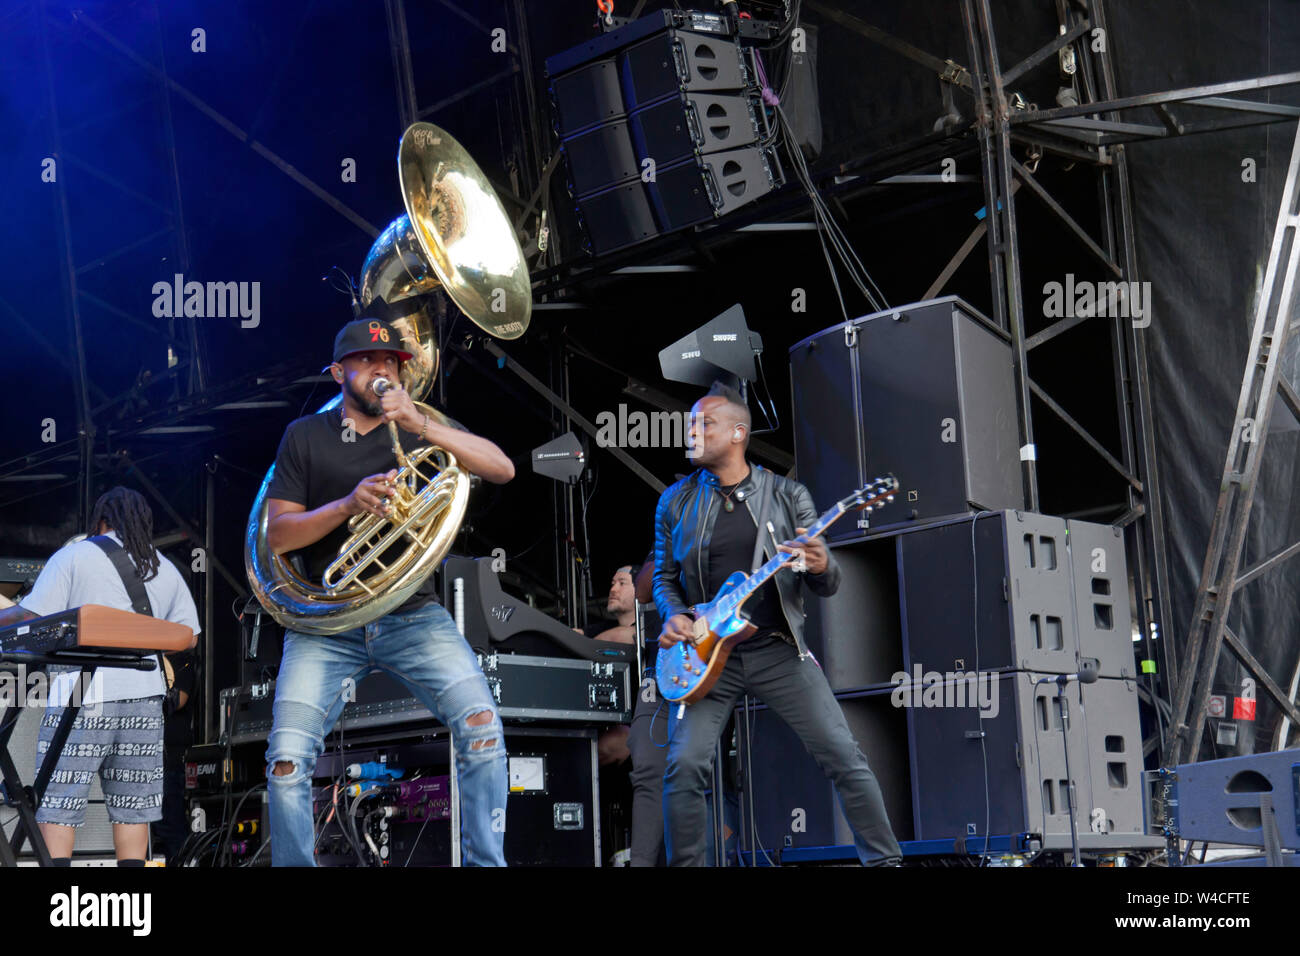 """Captain"""" Kirk Douglas and Tuba Gooding, Jr. (Damon Bryson)performing with The Roots, on the main stage at the OnBlackheath Music Festival 2019 Stock Photo"""